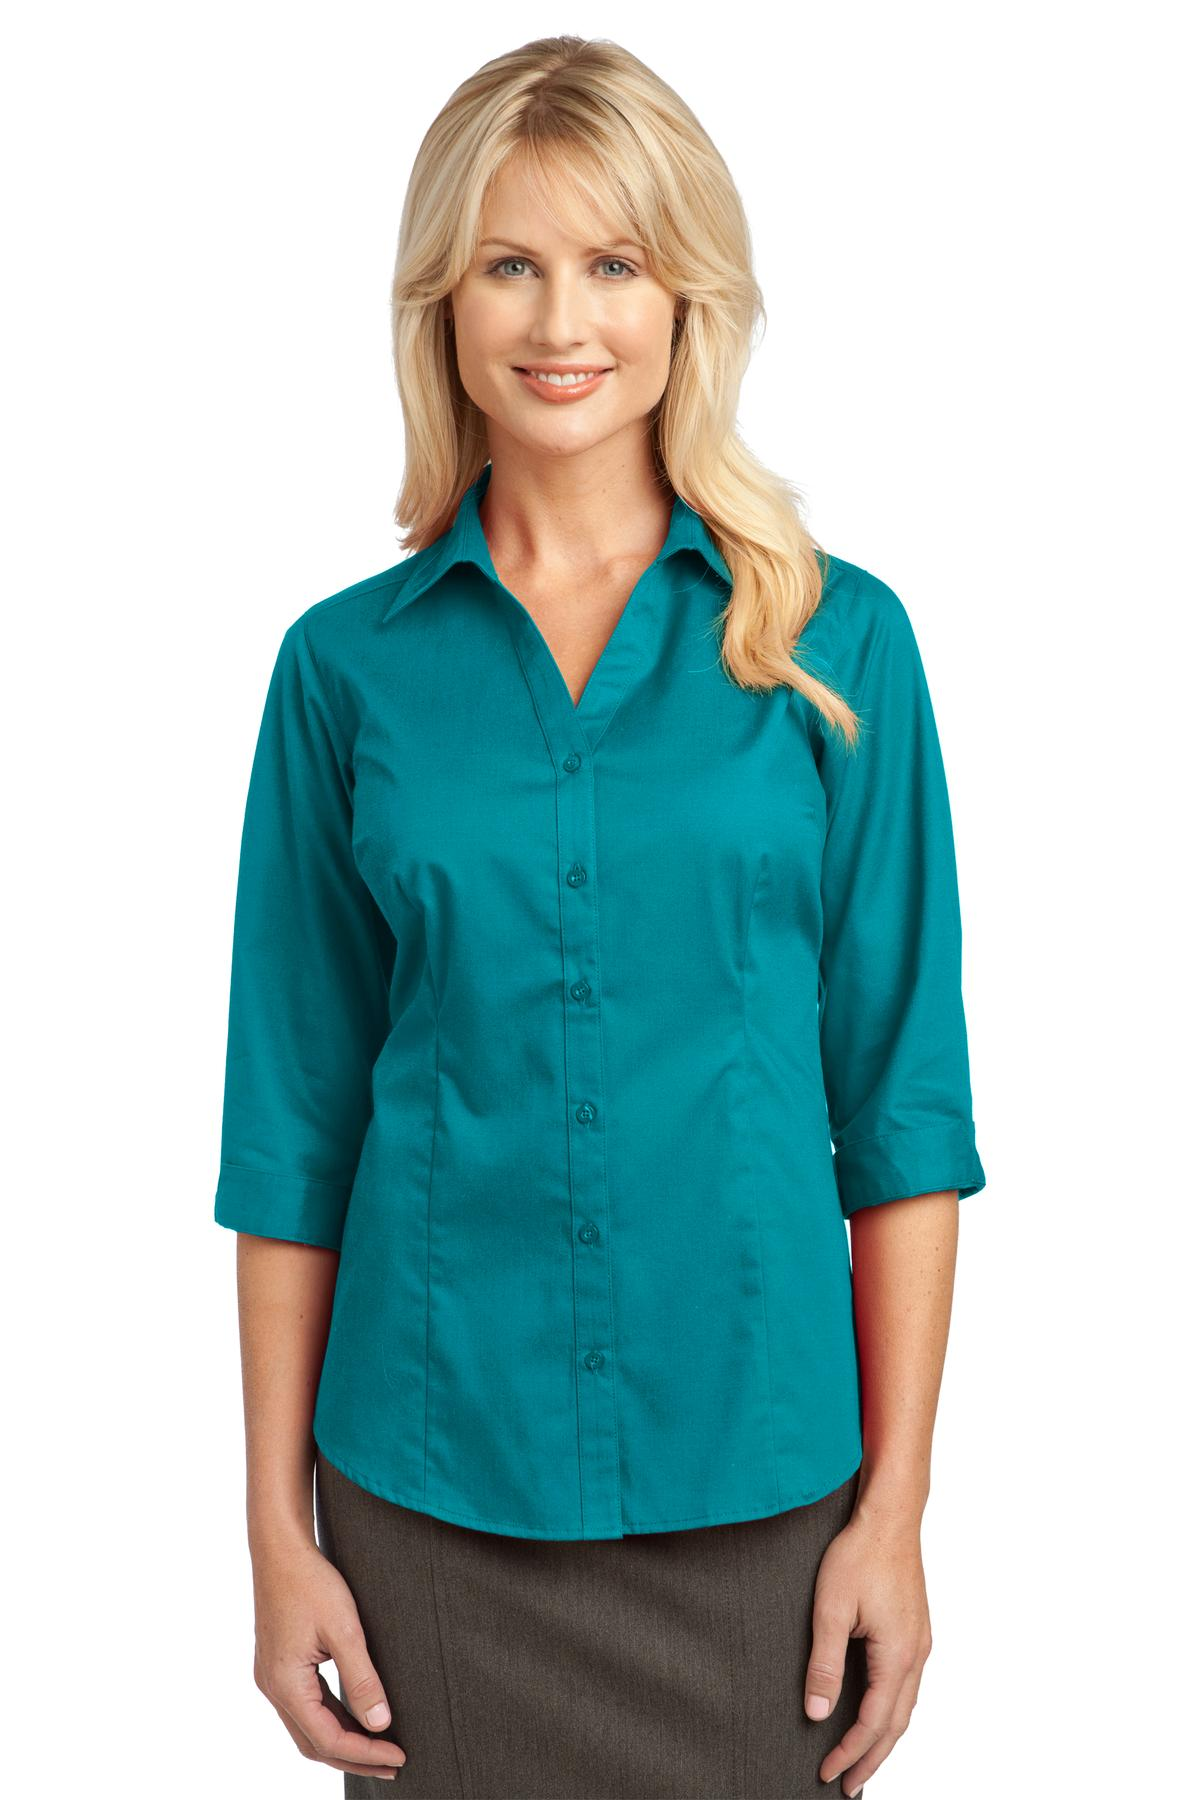 IMPROVED  Port Authority ®  Ladies 3/4-Sleeve Blouse. L6290 - Teal Green